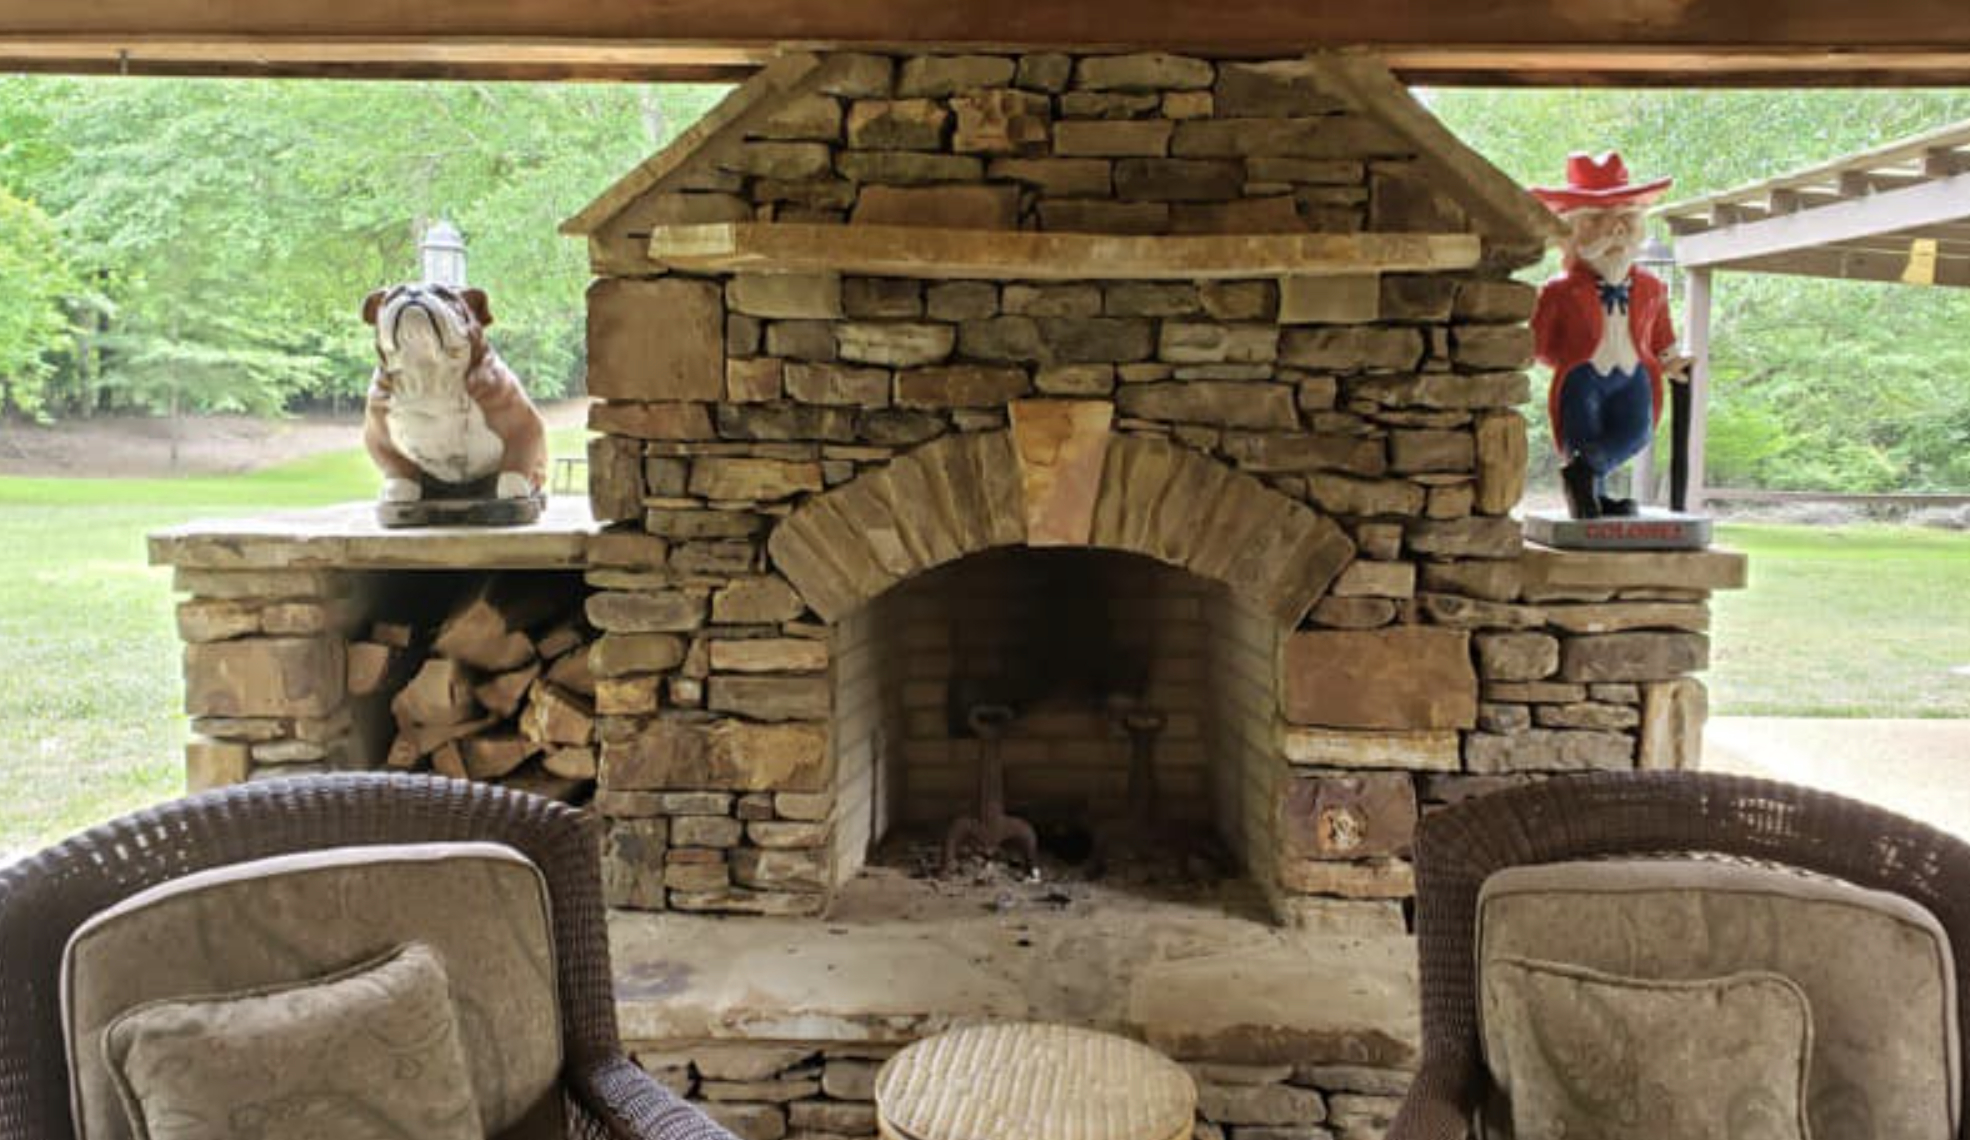 this image shows fireplace in Fullerton, California